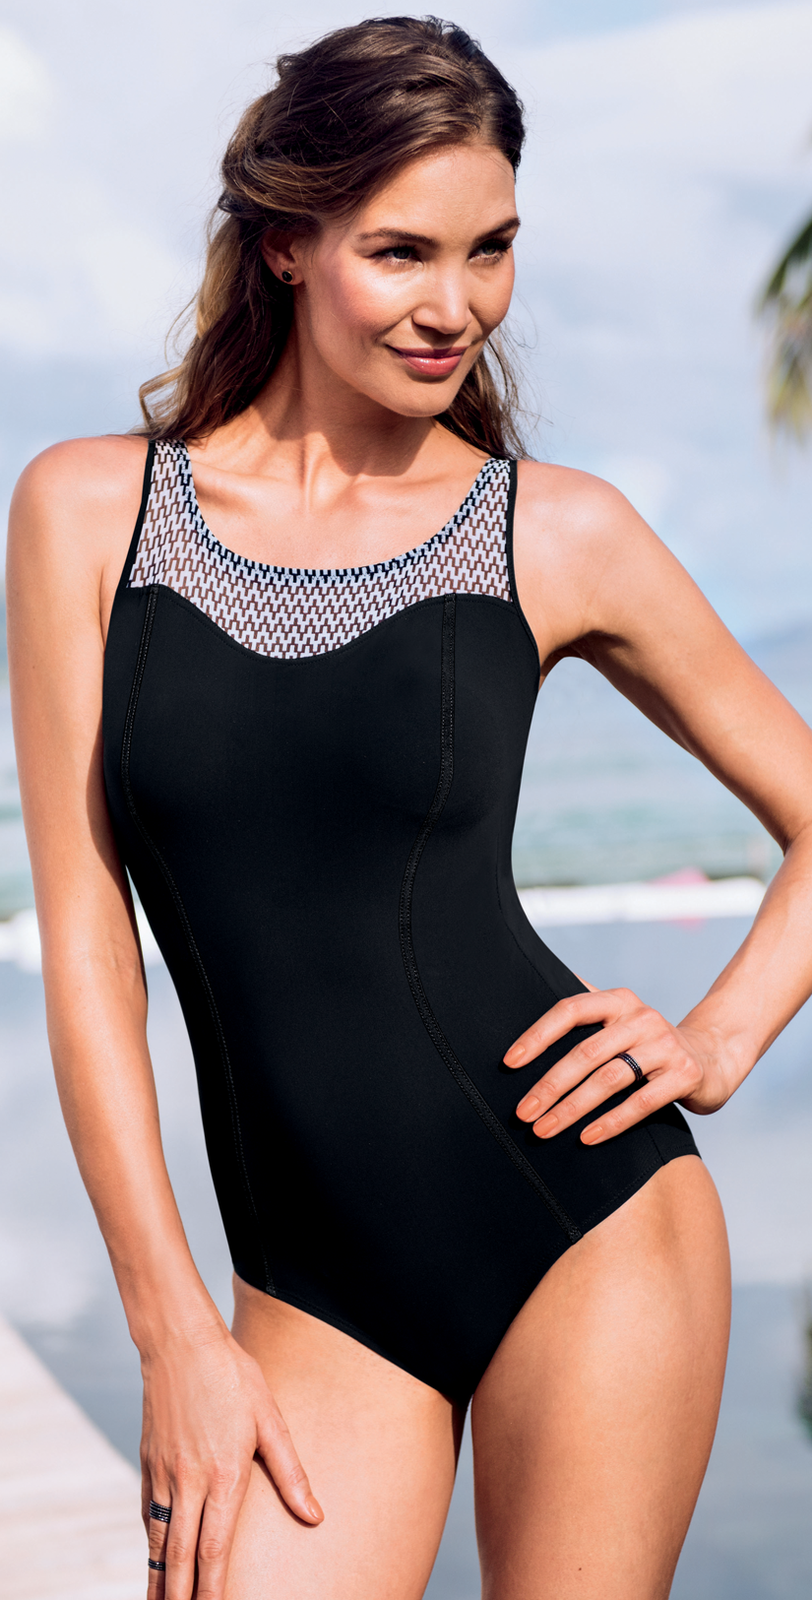 1a95c12a97a Anita Optical Graphic Mastectomy Swimsuit   Women Clothing ideas ...